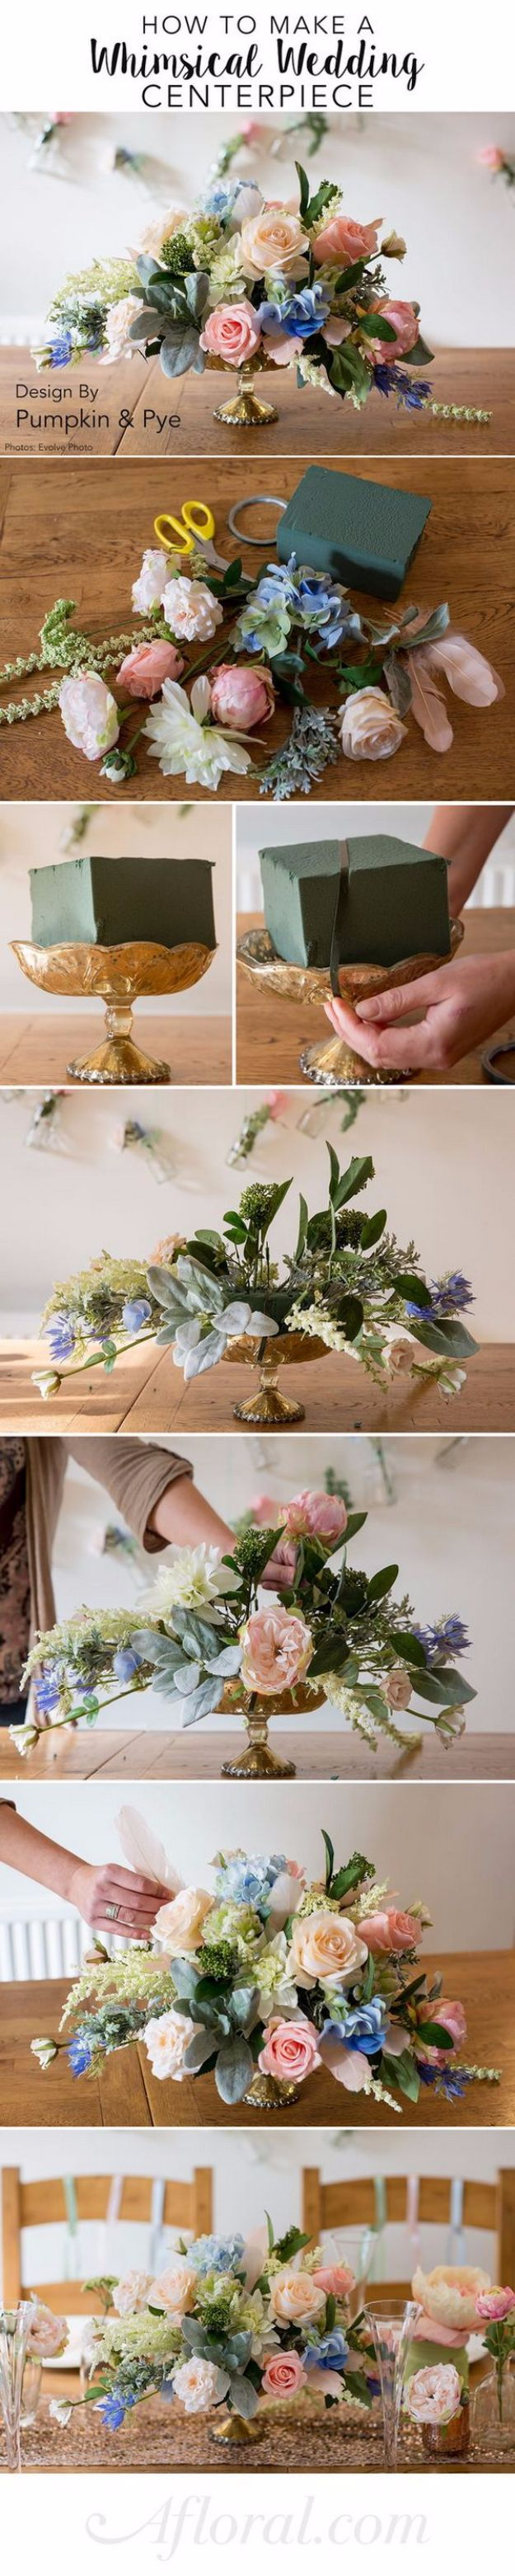 33 best diy wedding centerpieces you can make on a budget diy wedding centerpieces diy whimsical wedding centerpiece do it yourself ideas for brides and izmirmasajfo